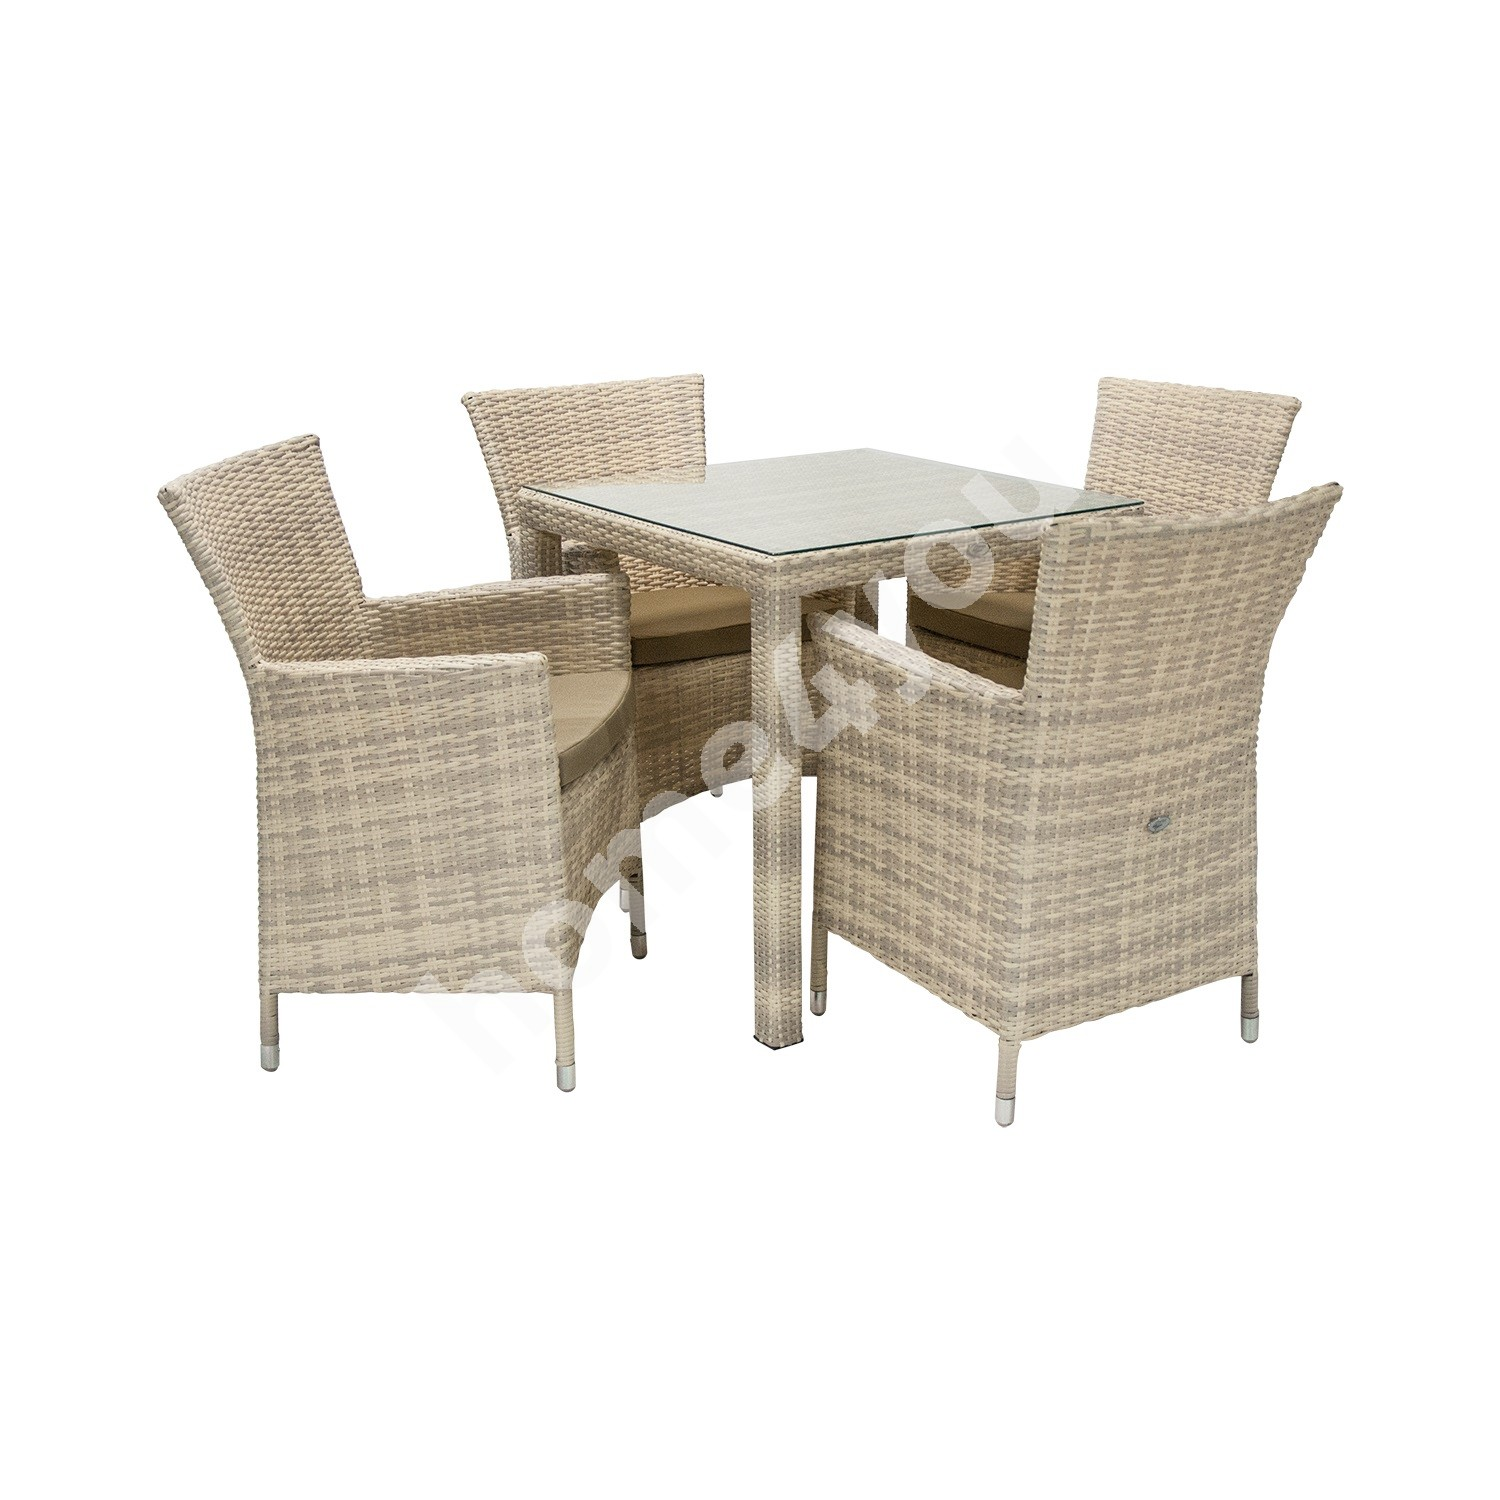 Set WICKER table and 4 chairs (1270), 73x73xH71cm, aluminum frame with plastic wicker, color: beige